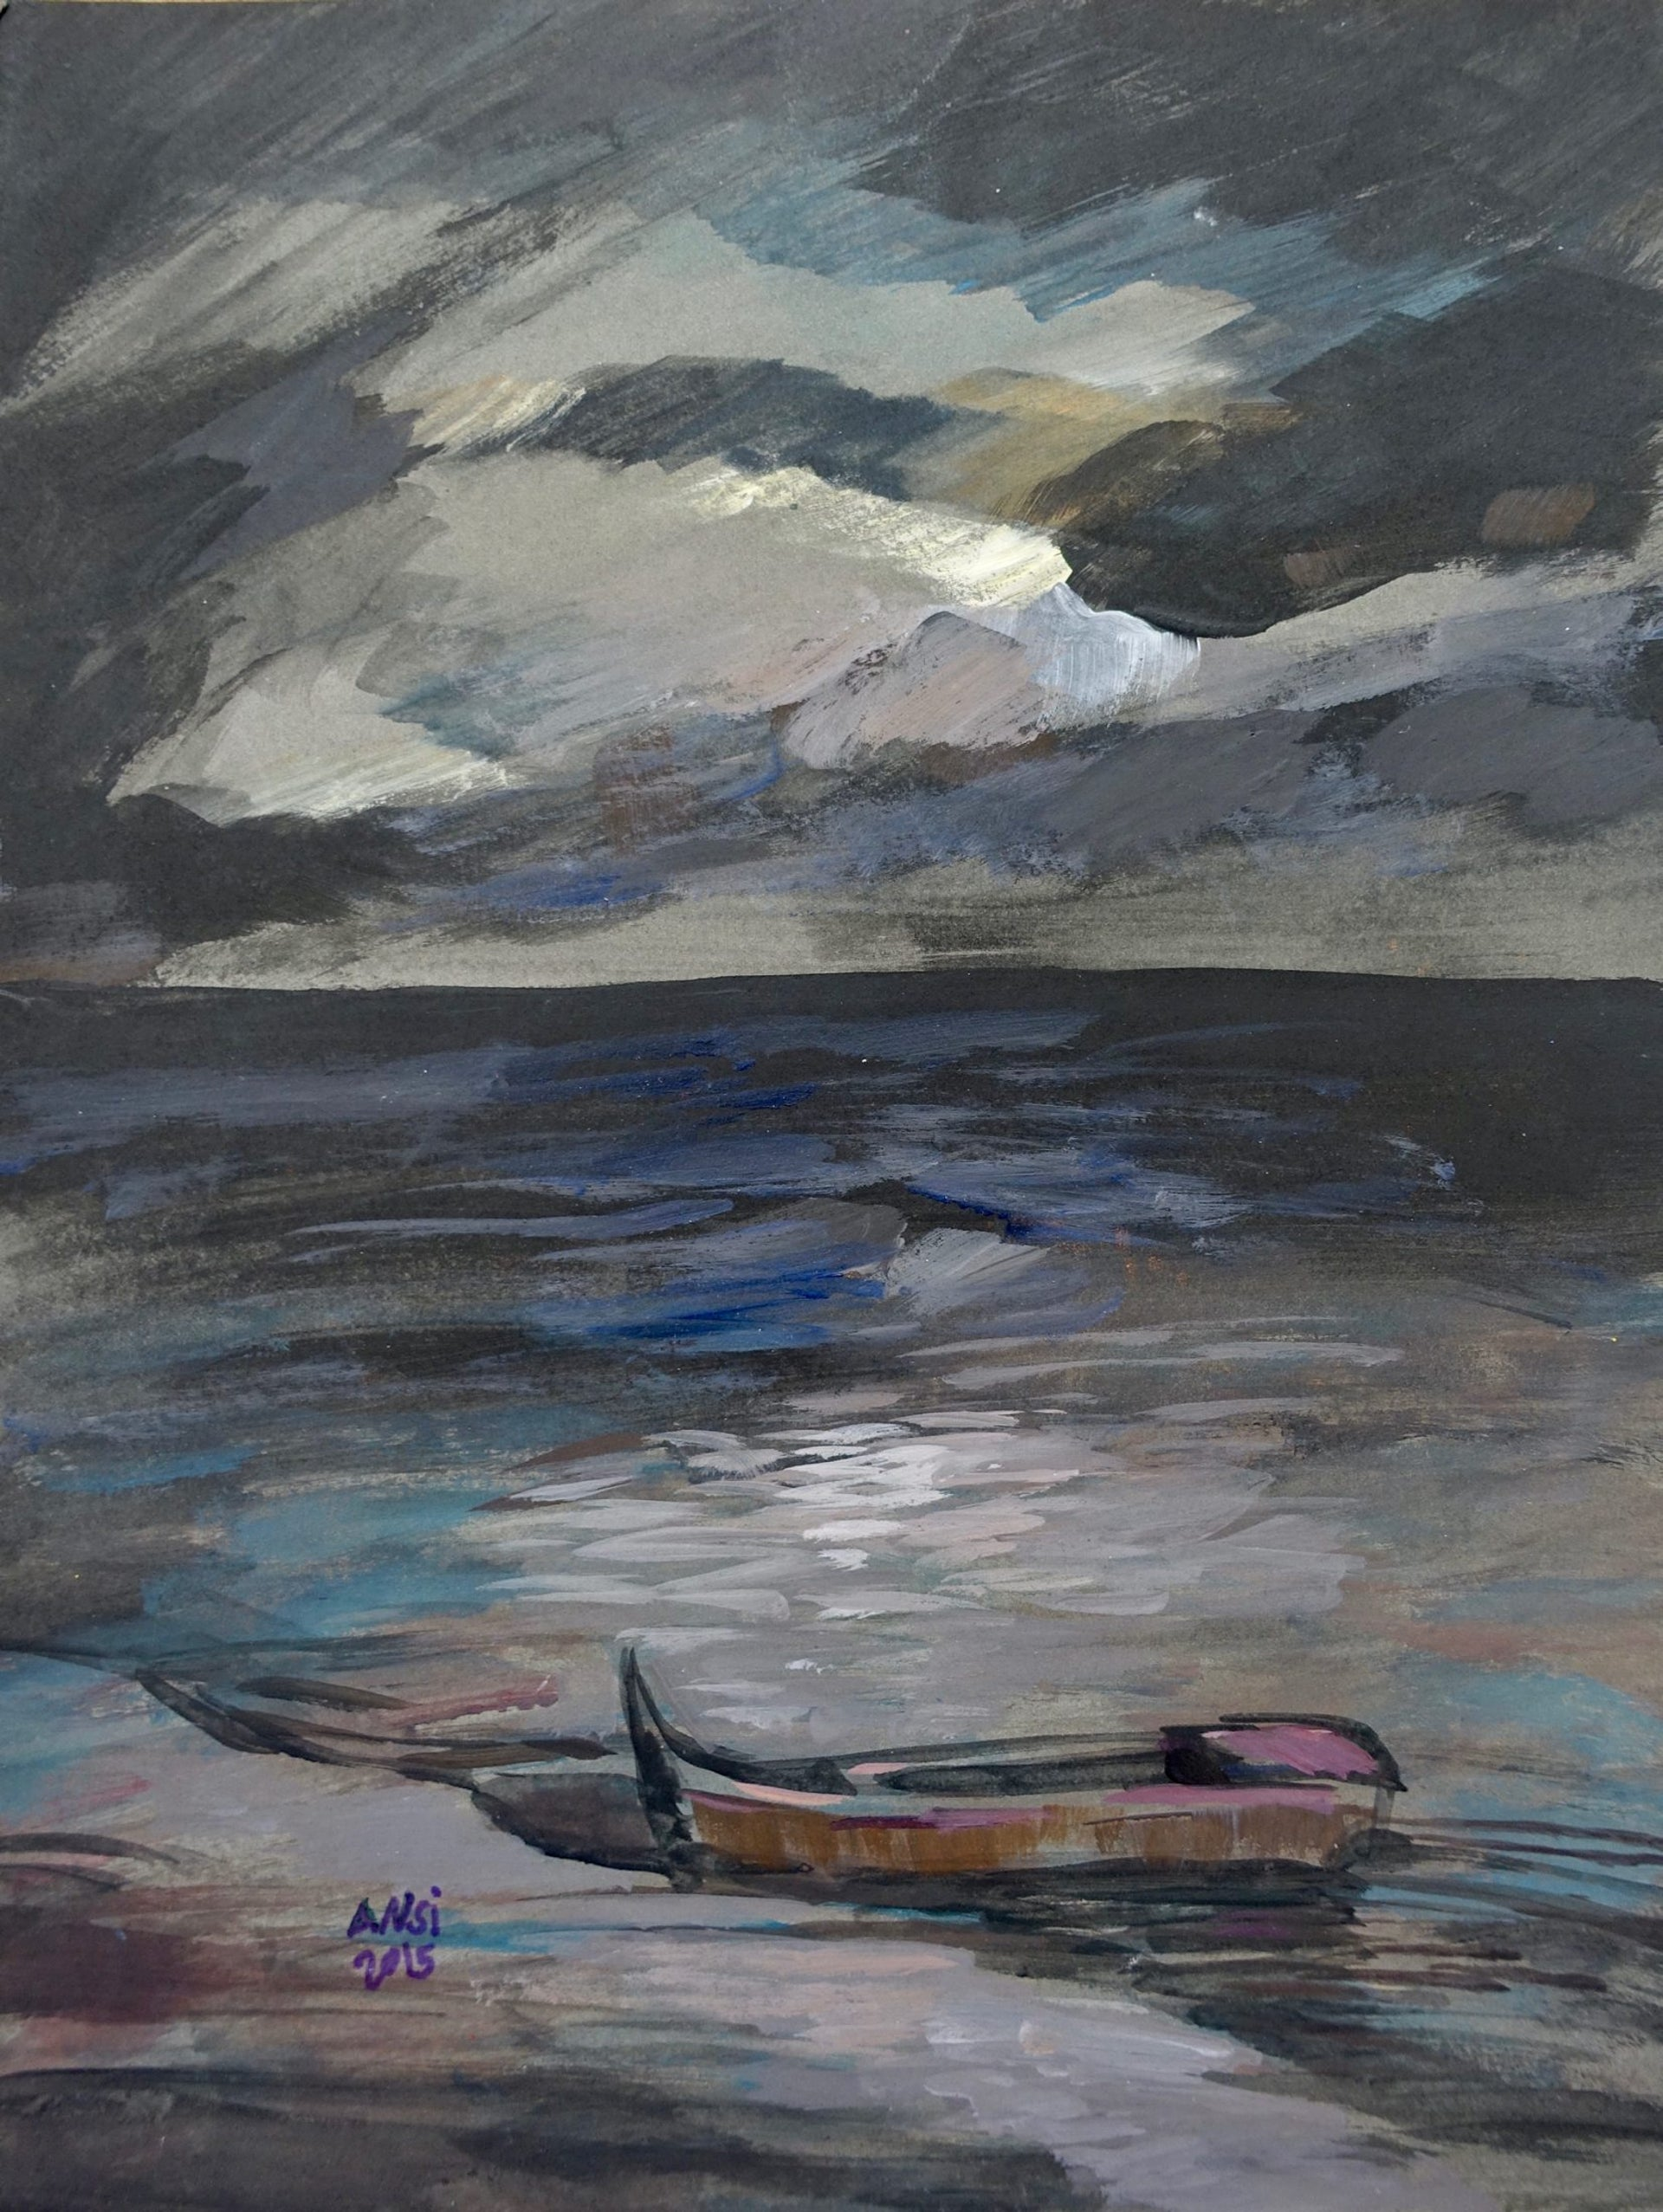 'Black Shore', a painting by Muhammad Ansi.